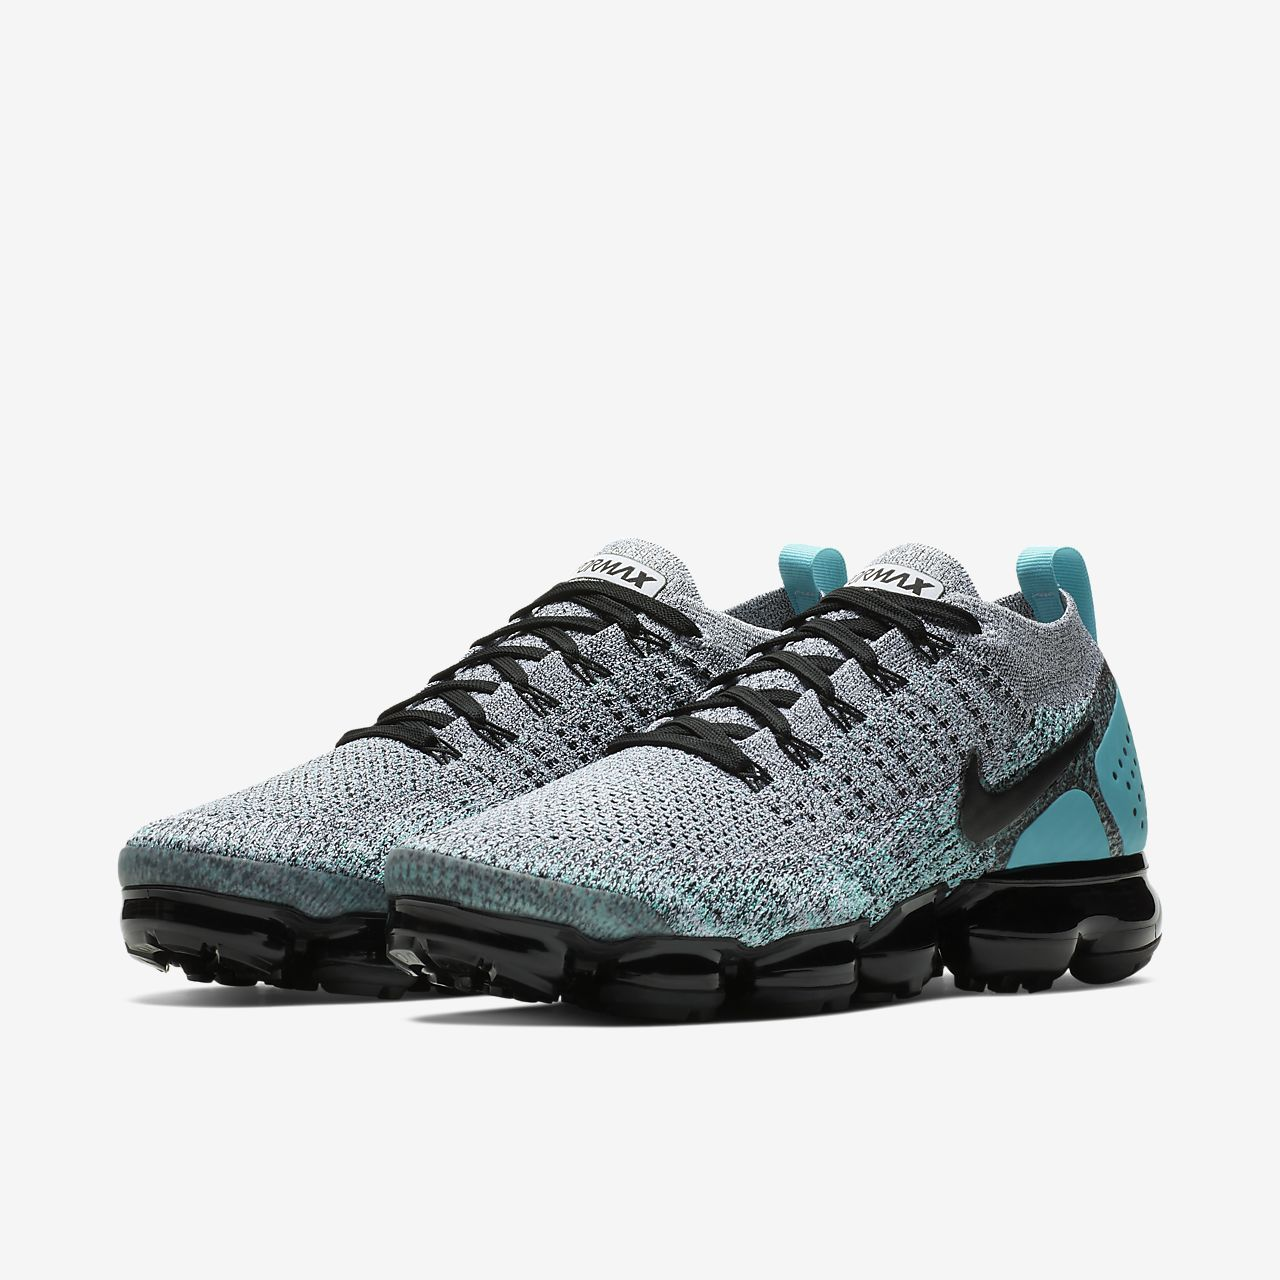 sale online shopping Nike Nike Air VaporMax Flyknit 2 sneakers best store to get online Cheapest cheap online for sale under $60 cheap Manchester I7Bco